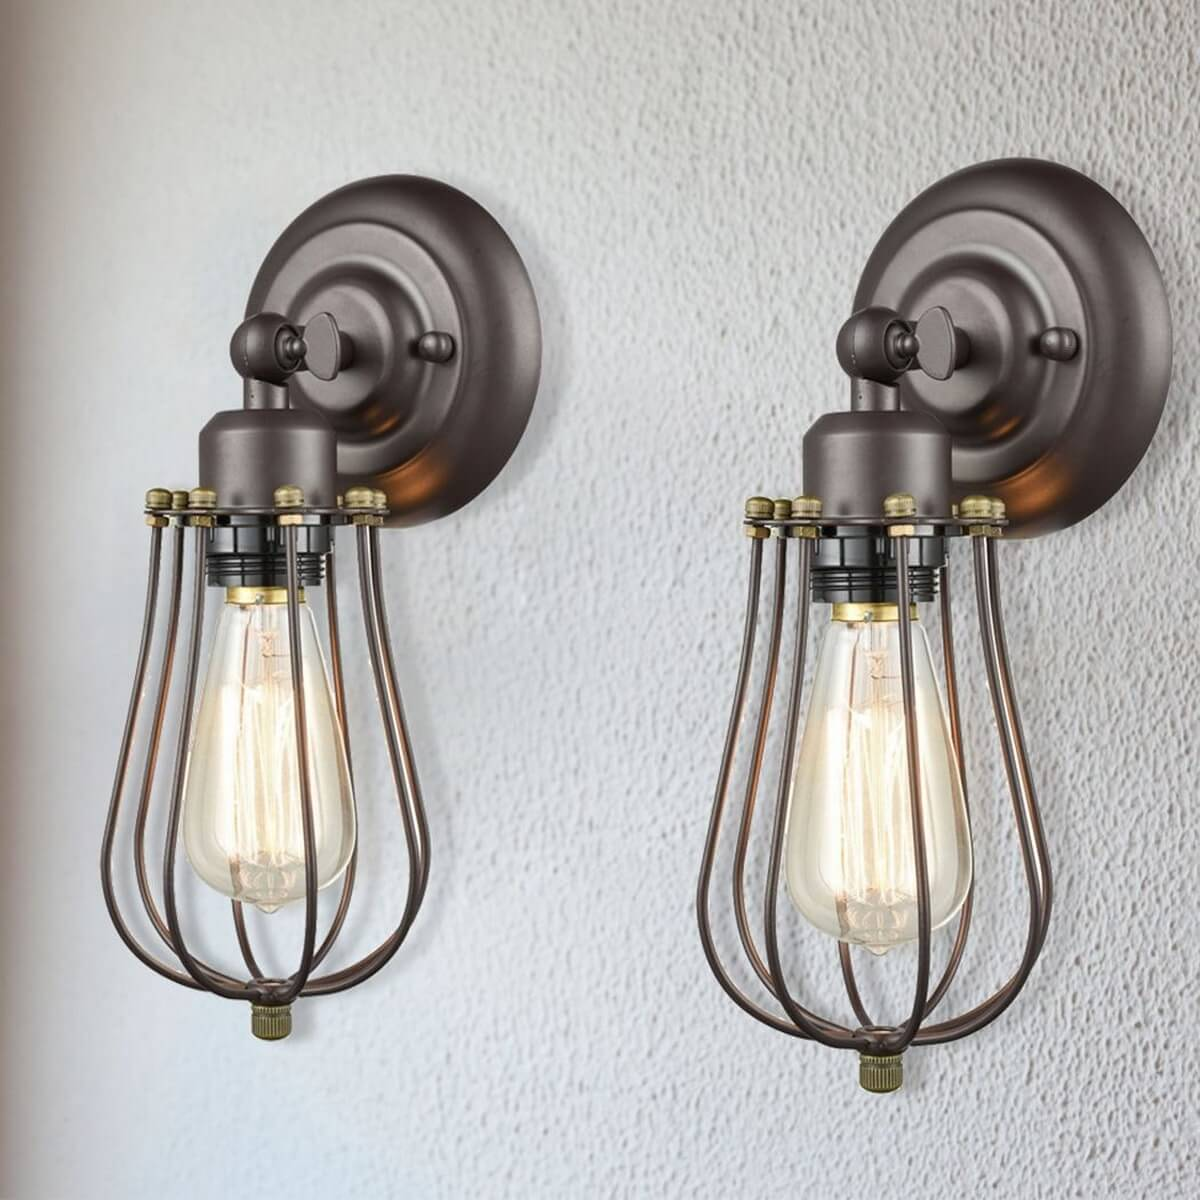 Metal Cage Rustic Wall Sconces, 2 Pack